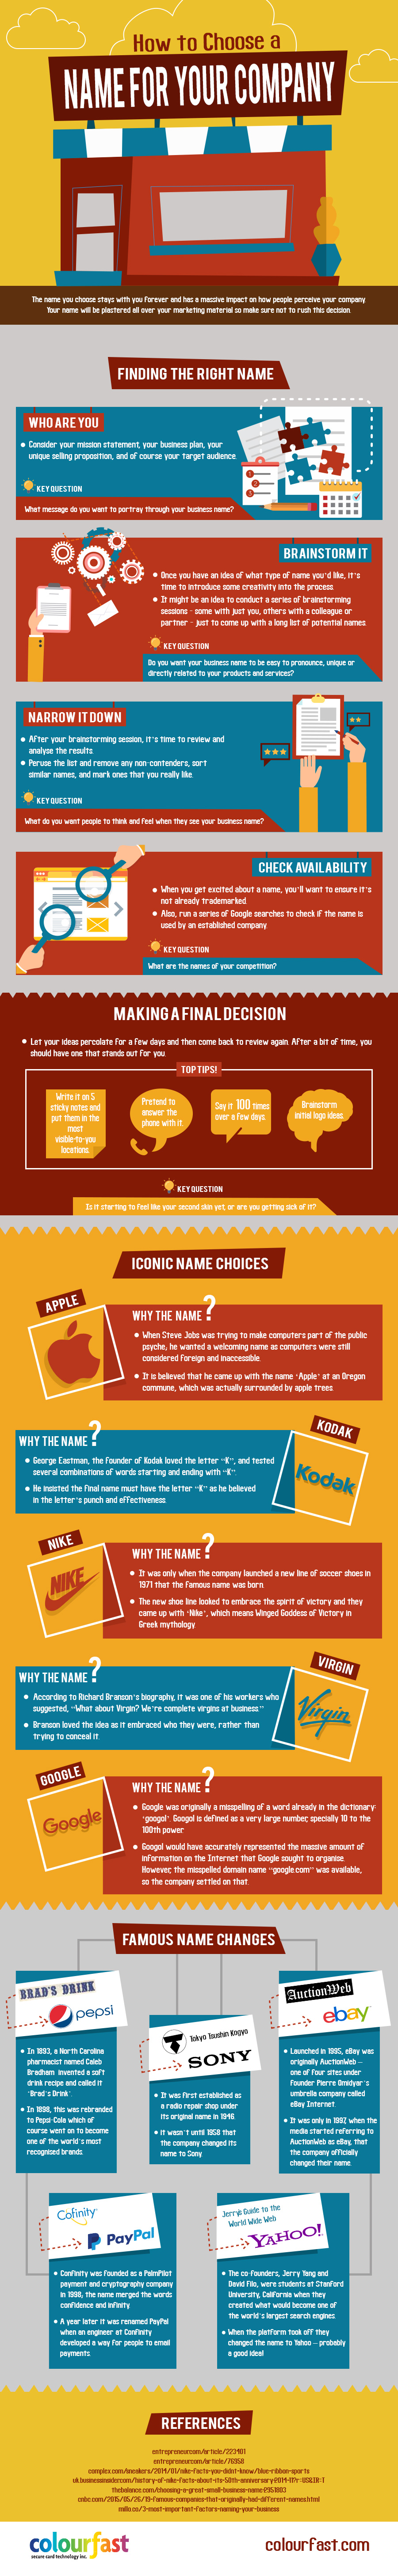 How-to-Choose-a-Name-for-Your-Company-Infographic.jpg